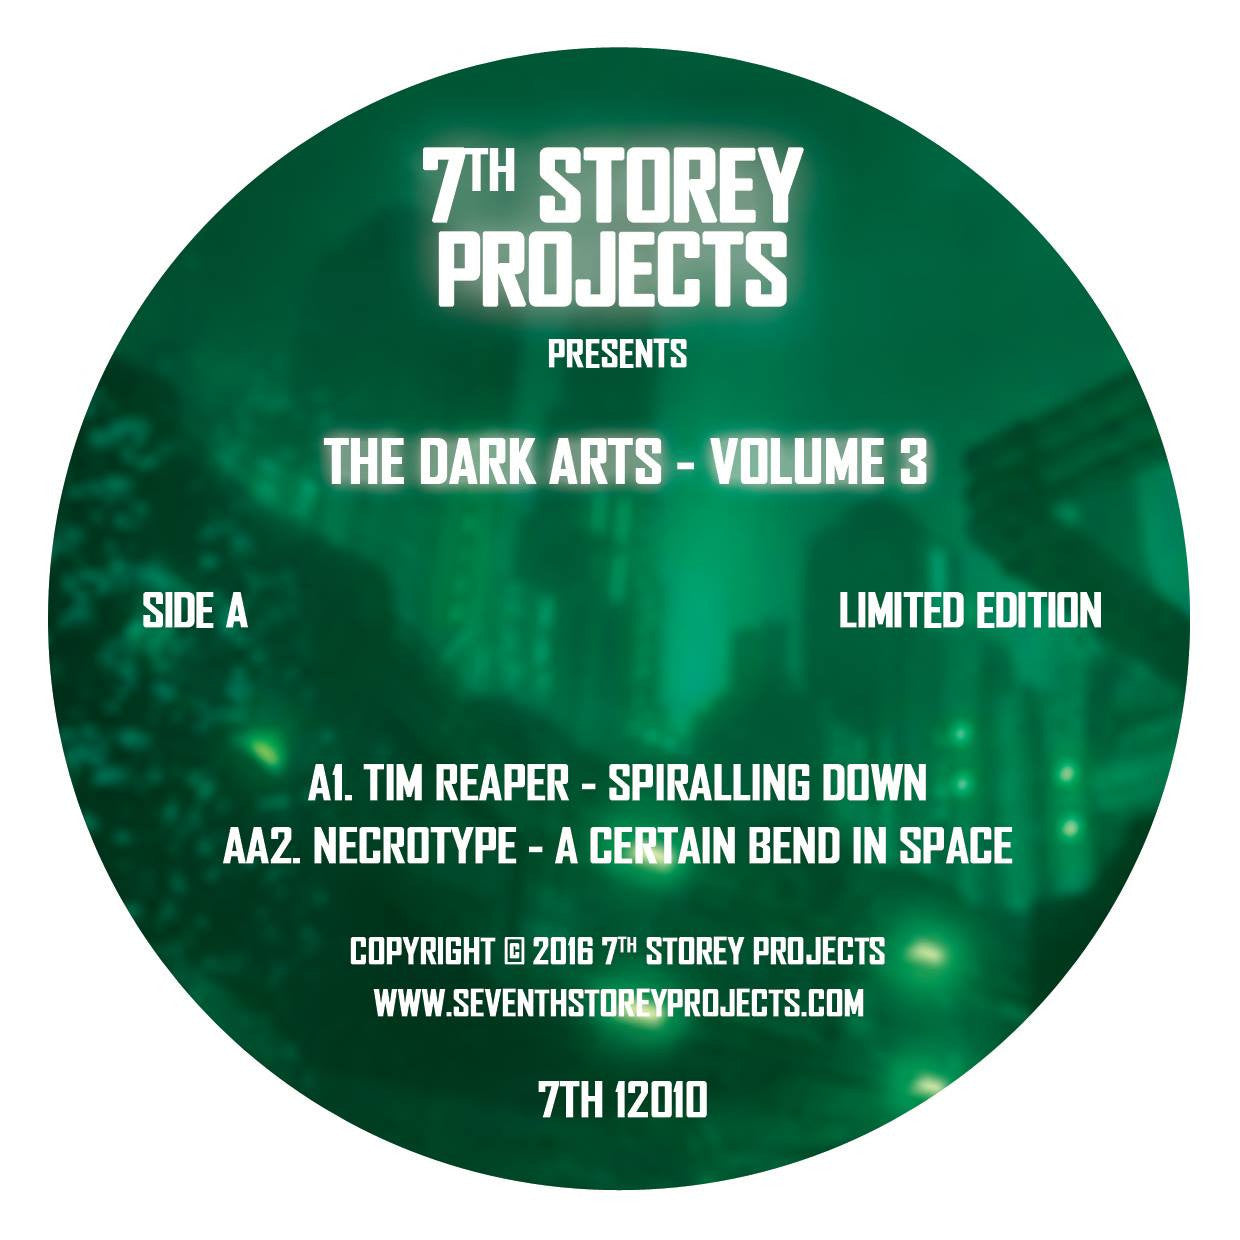 7th Storey Projects Presents - The Dark Arts Volume 3 [Green Vinyl] , Vinyl - 7th Storey Projects, Unearthed Sounds